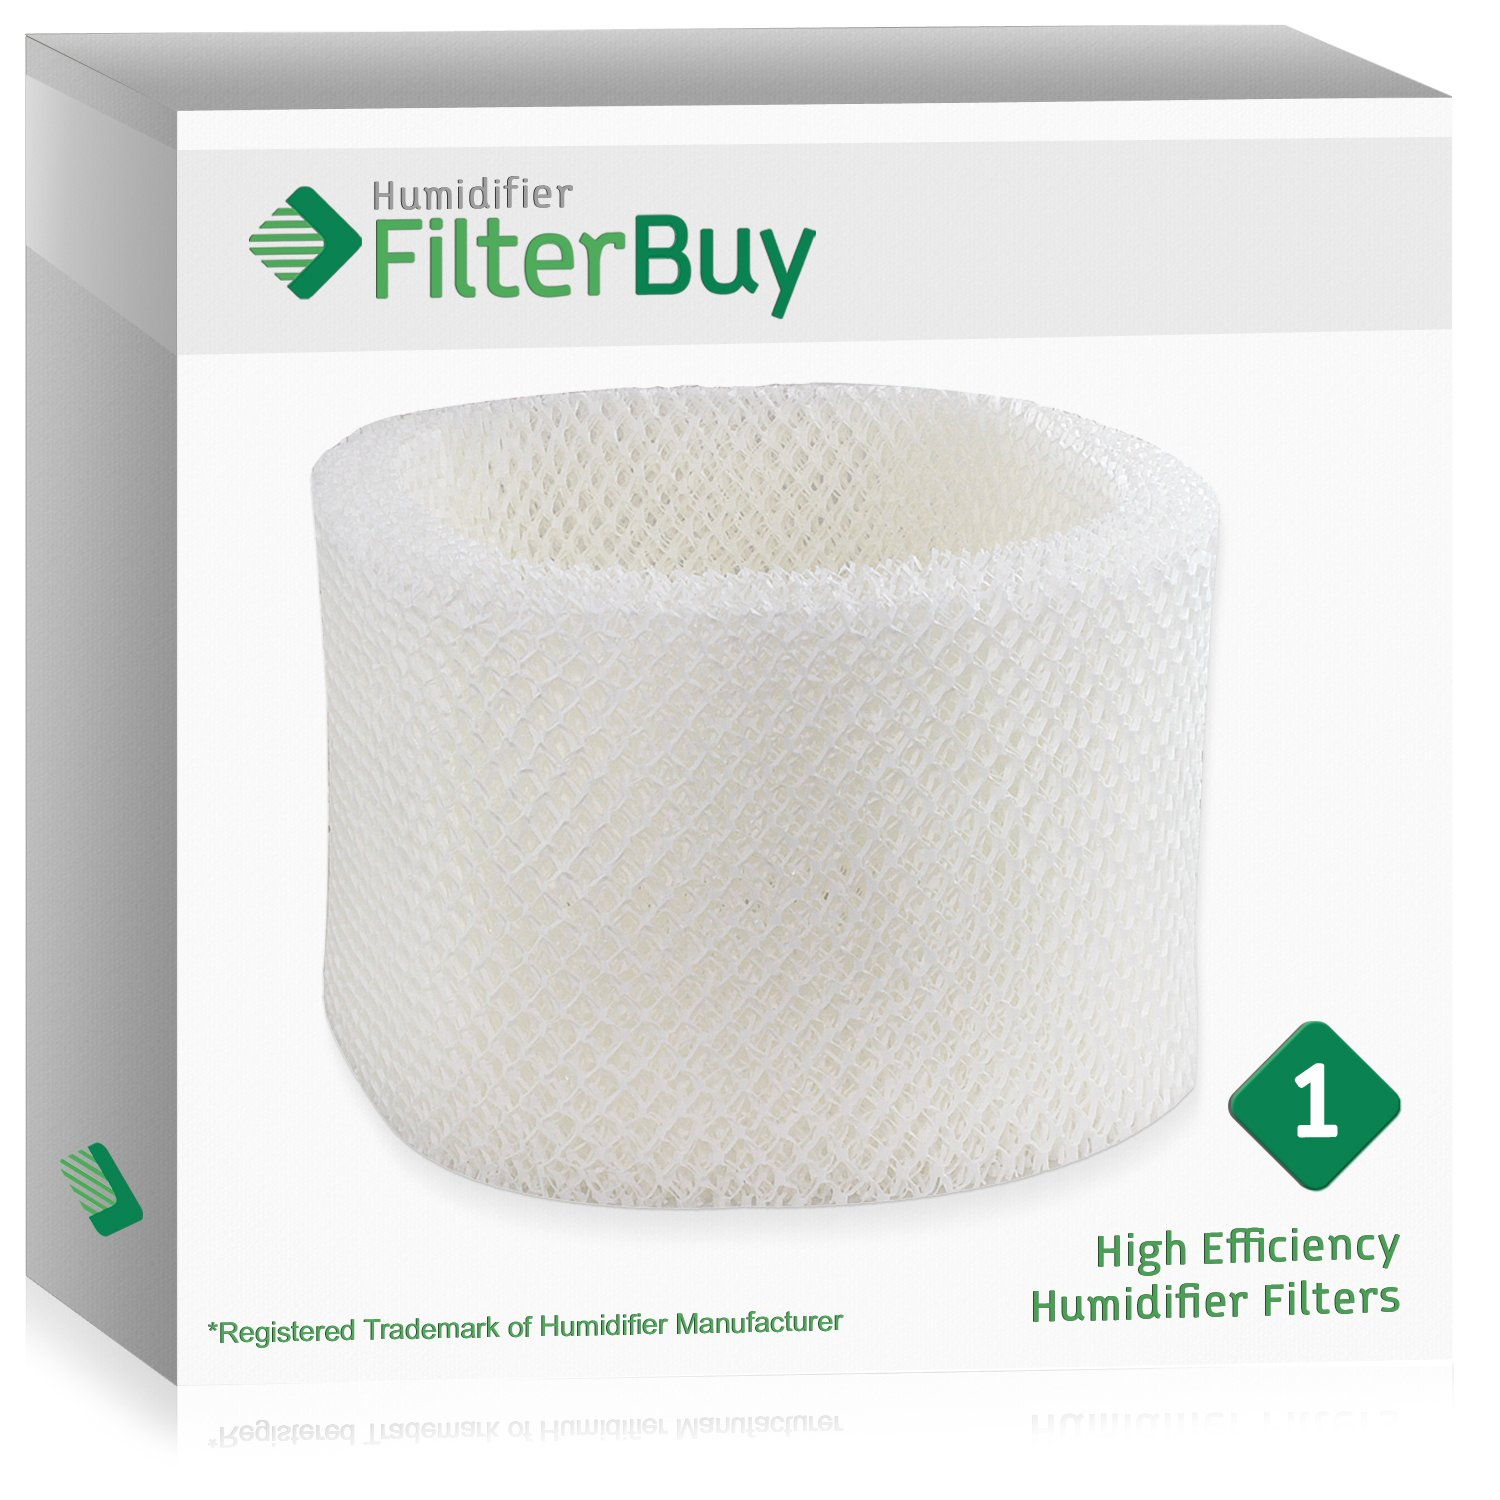 HWF72 HWF75 Holmes, Touch Point, Sunbeam Humidifier Replacement Filter. Designed by FilterBuy in the USA.